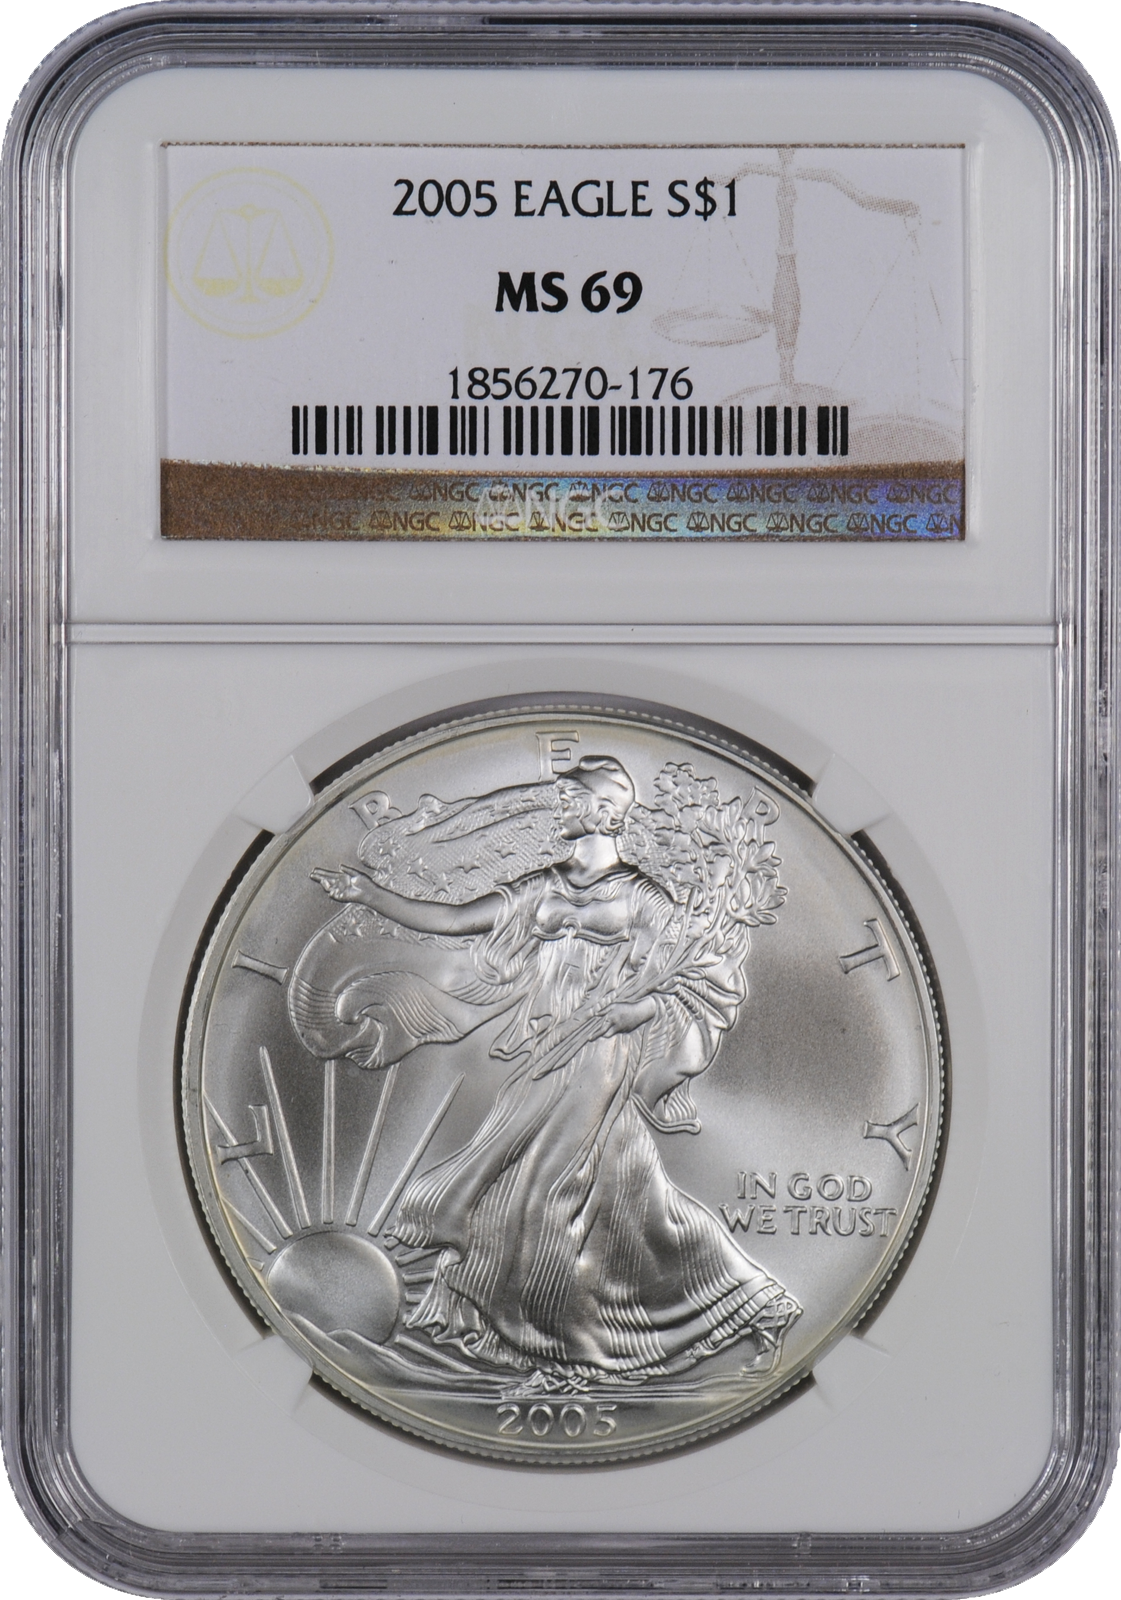 This 2005 Silver Eagle Ms69 Is A Popular Coin For Investors And Collectors Alike This Coin Has A Face Value Of One Us Doll Silver Eagles Coins Silver Bullion